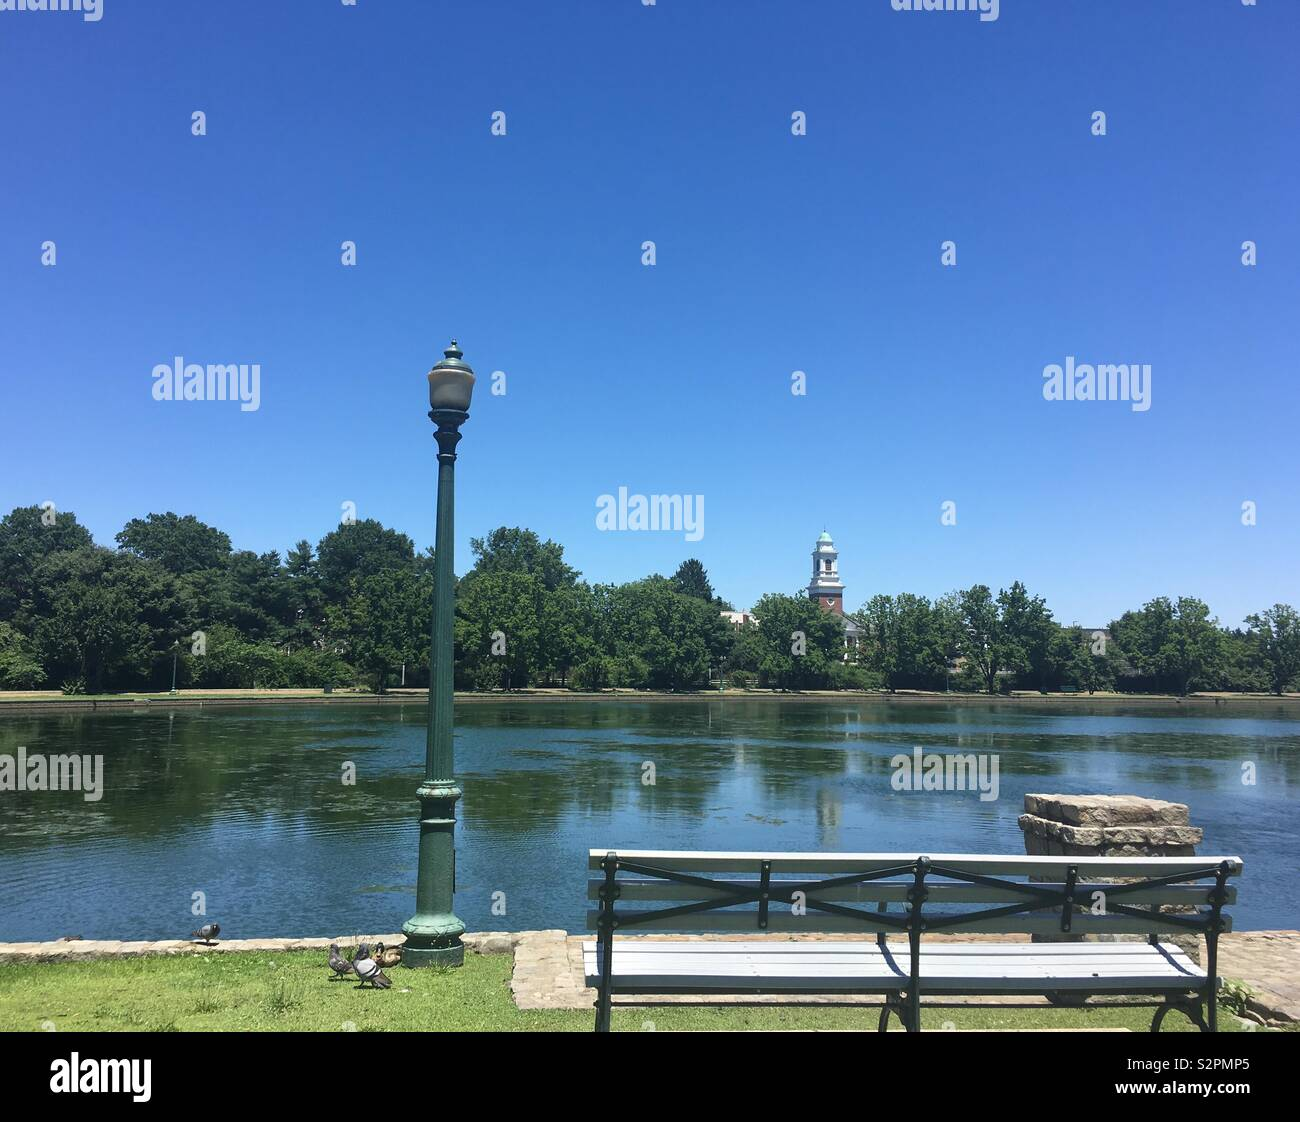 Park Bench by a lake - Stock Image